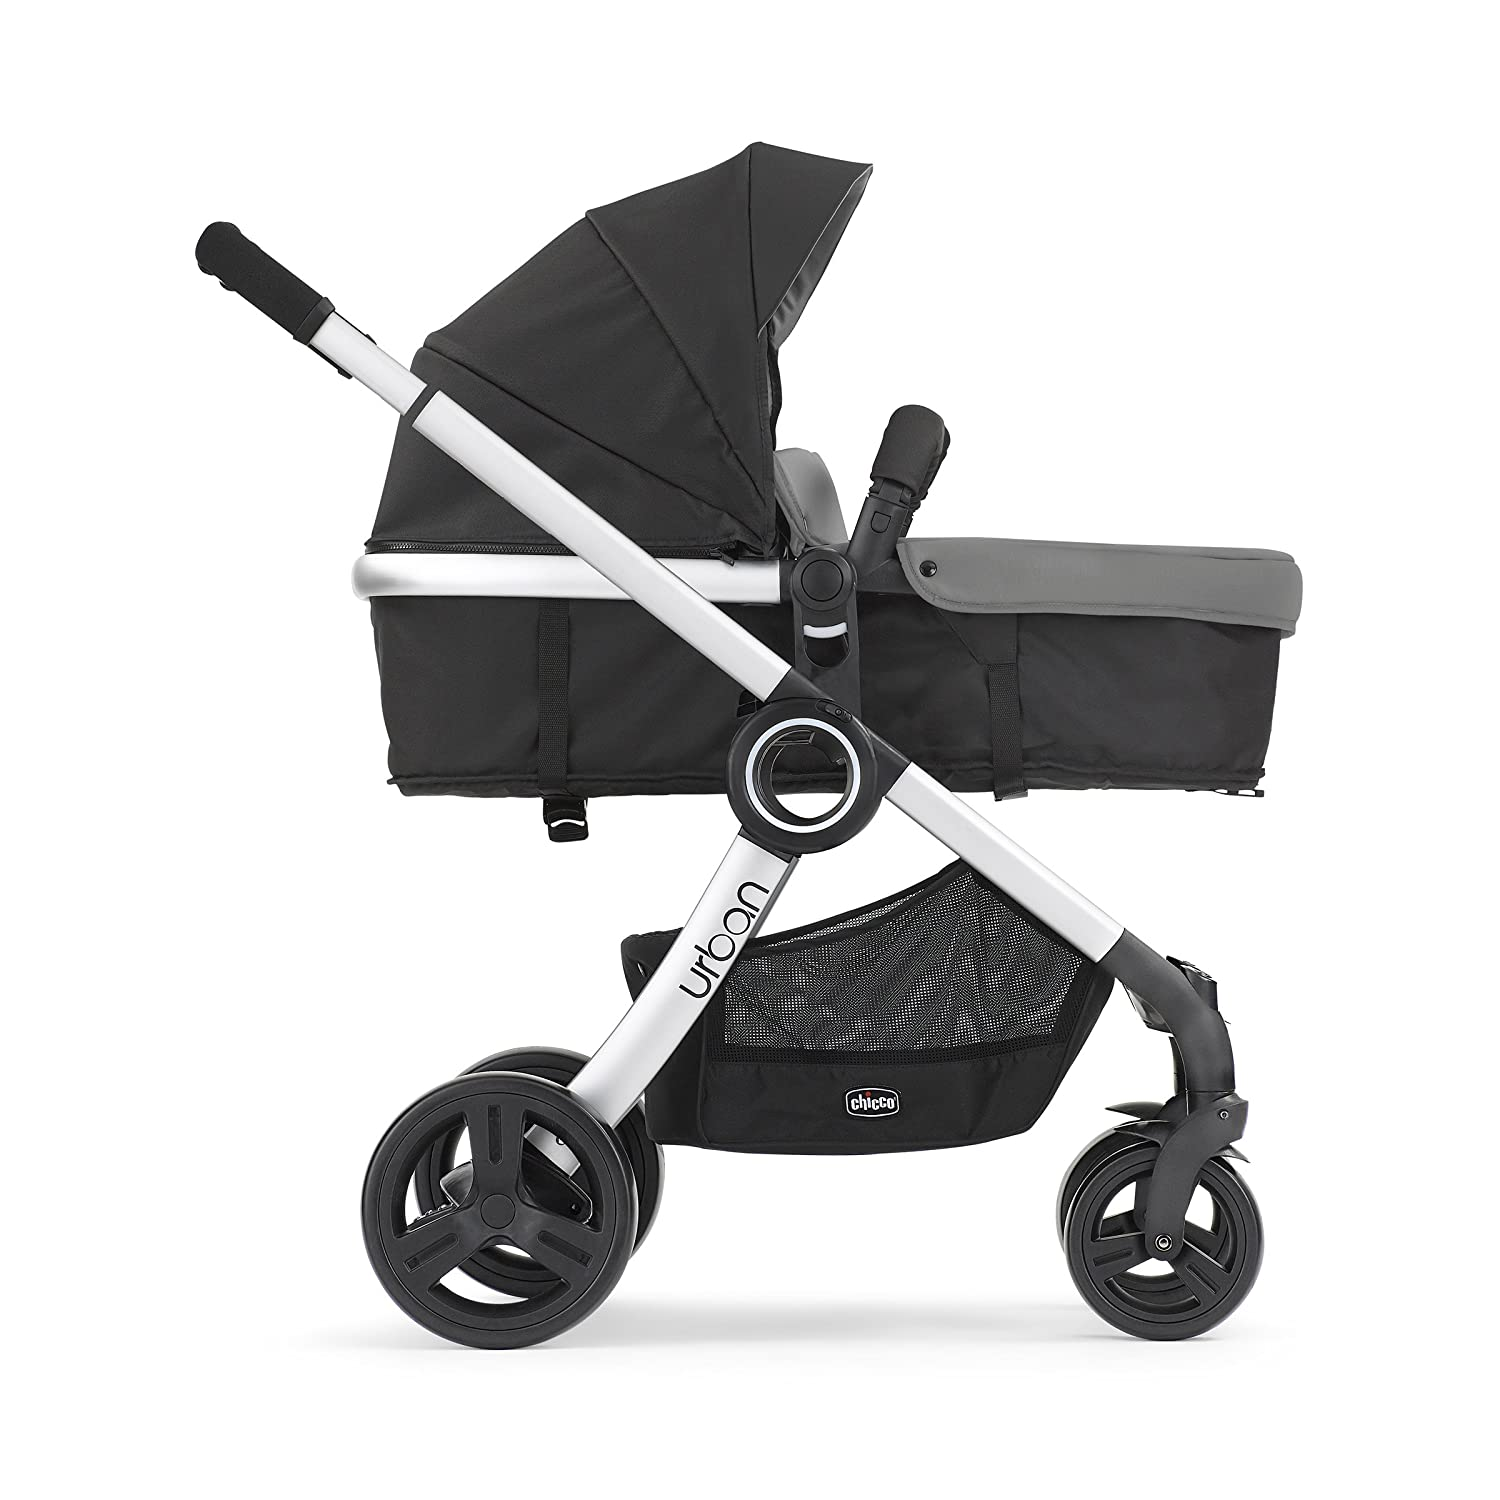 Amazon.com: Chicco Urban Stroller, Coal: Baby